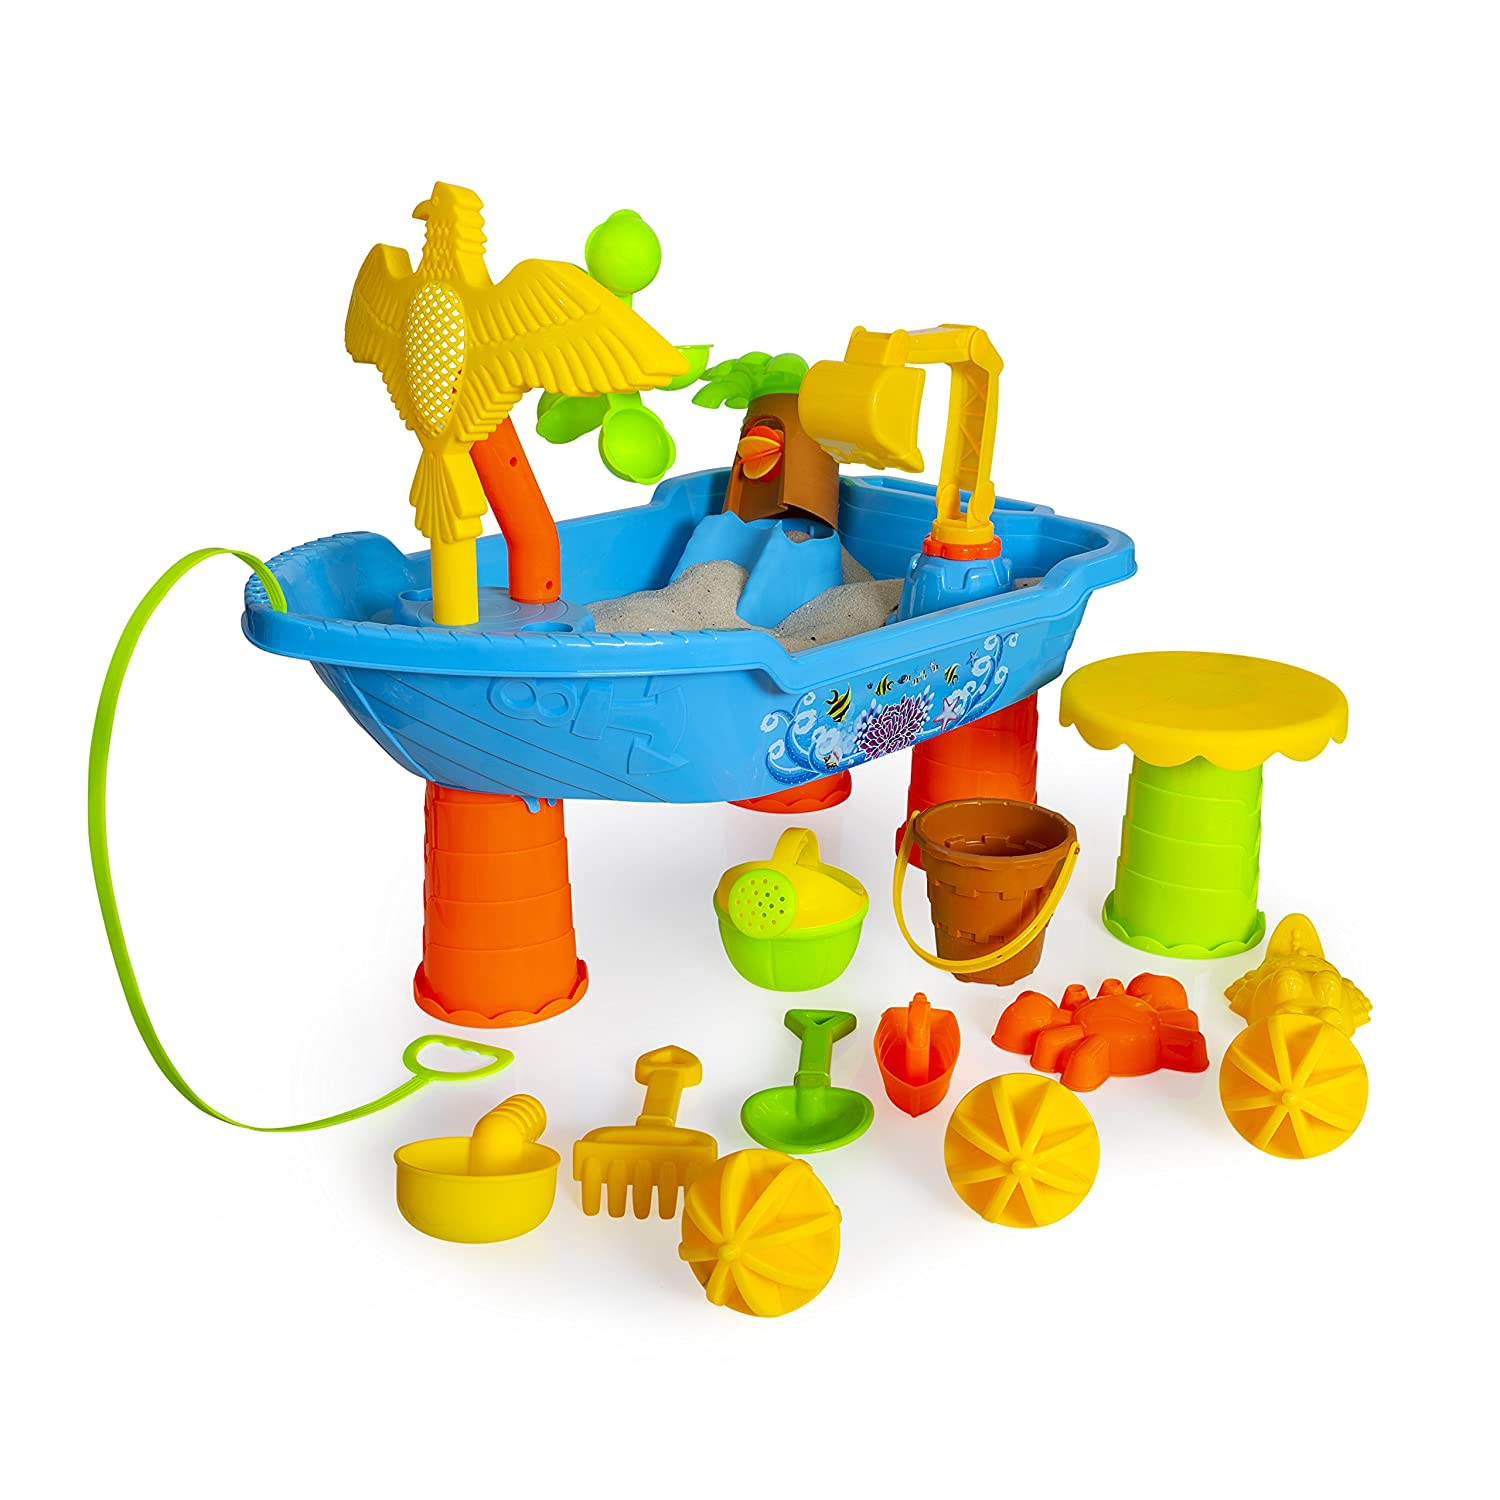 Top 11 Best Water Tables for Kids and Toddlers Reviews in 2021 20